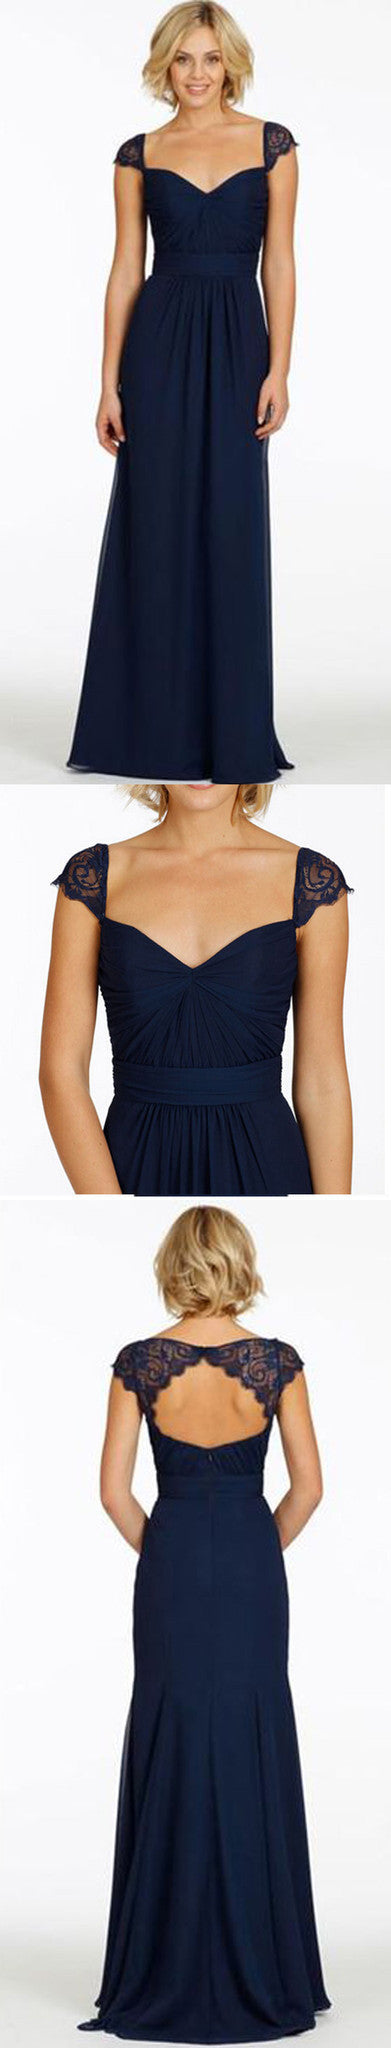 2d1b53328c Lace Cap Sleeve Queen Anne Open Back Sweetheart Chiffon Navy Blue Long  Bridesmaid Dresses, WG43